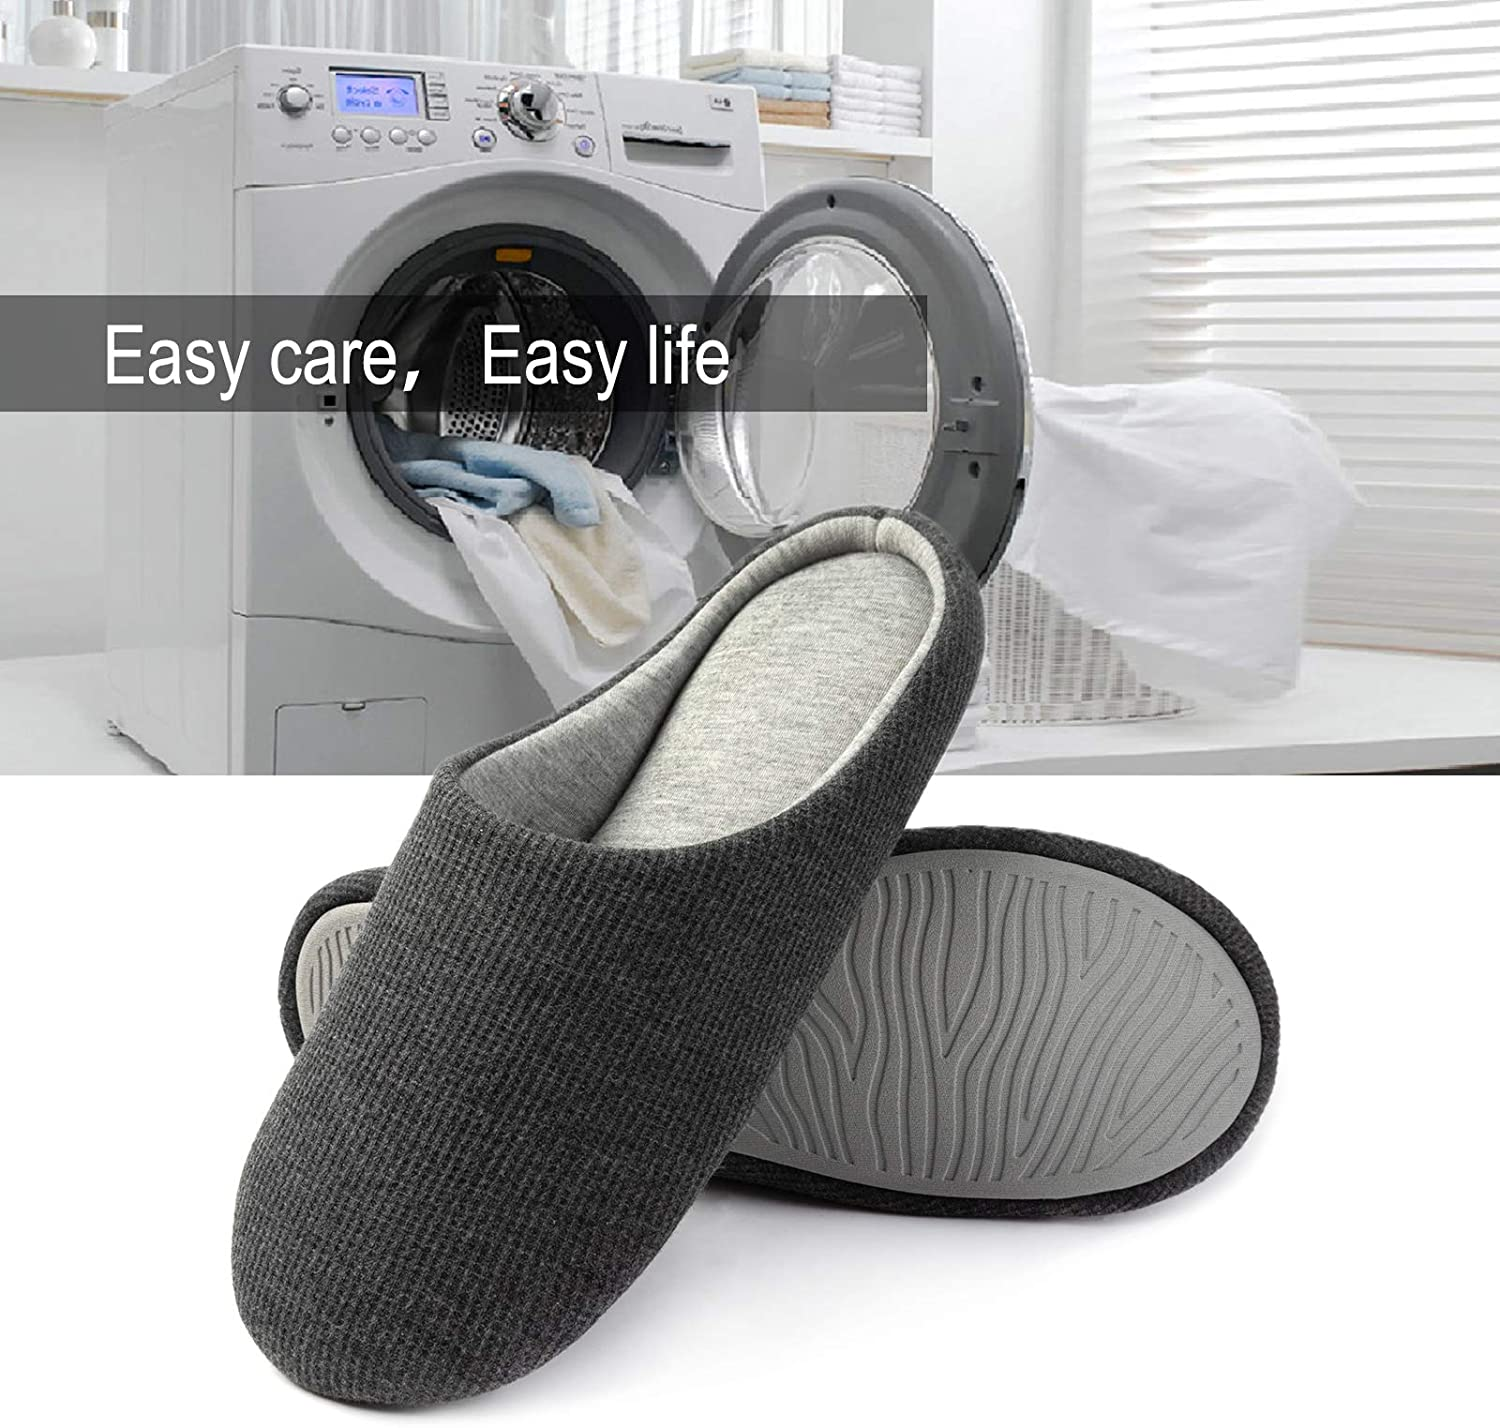 ULTRAIDEAS Mens Comfort Knitted Cotton Slippers Washable Flat ...